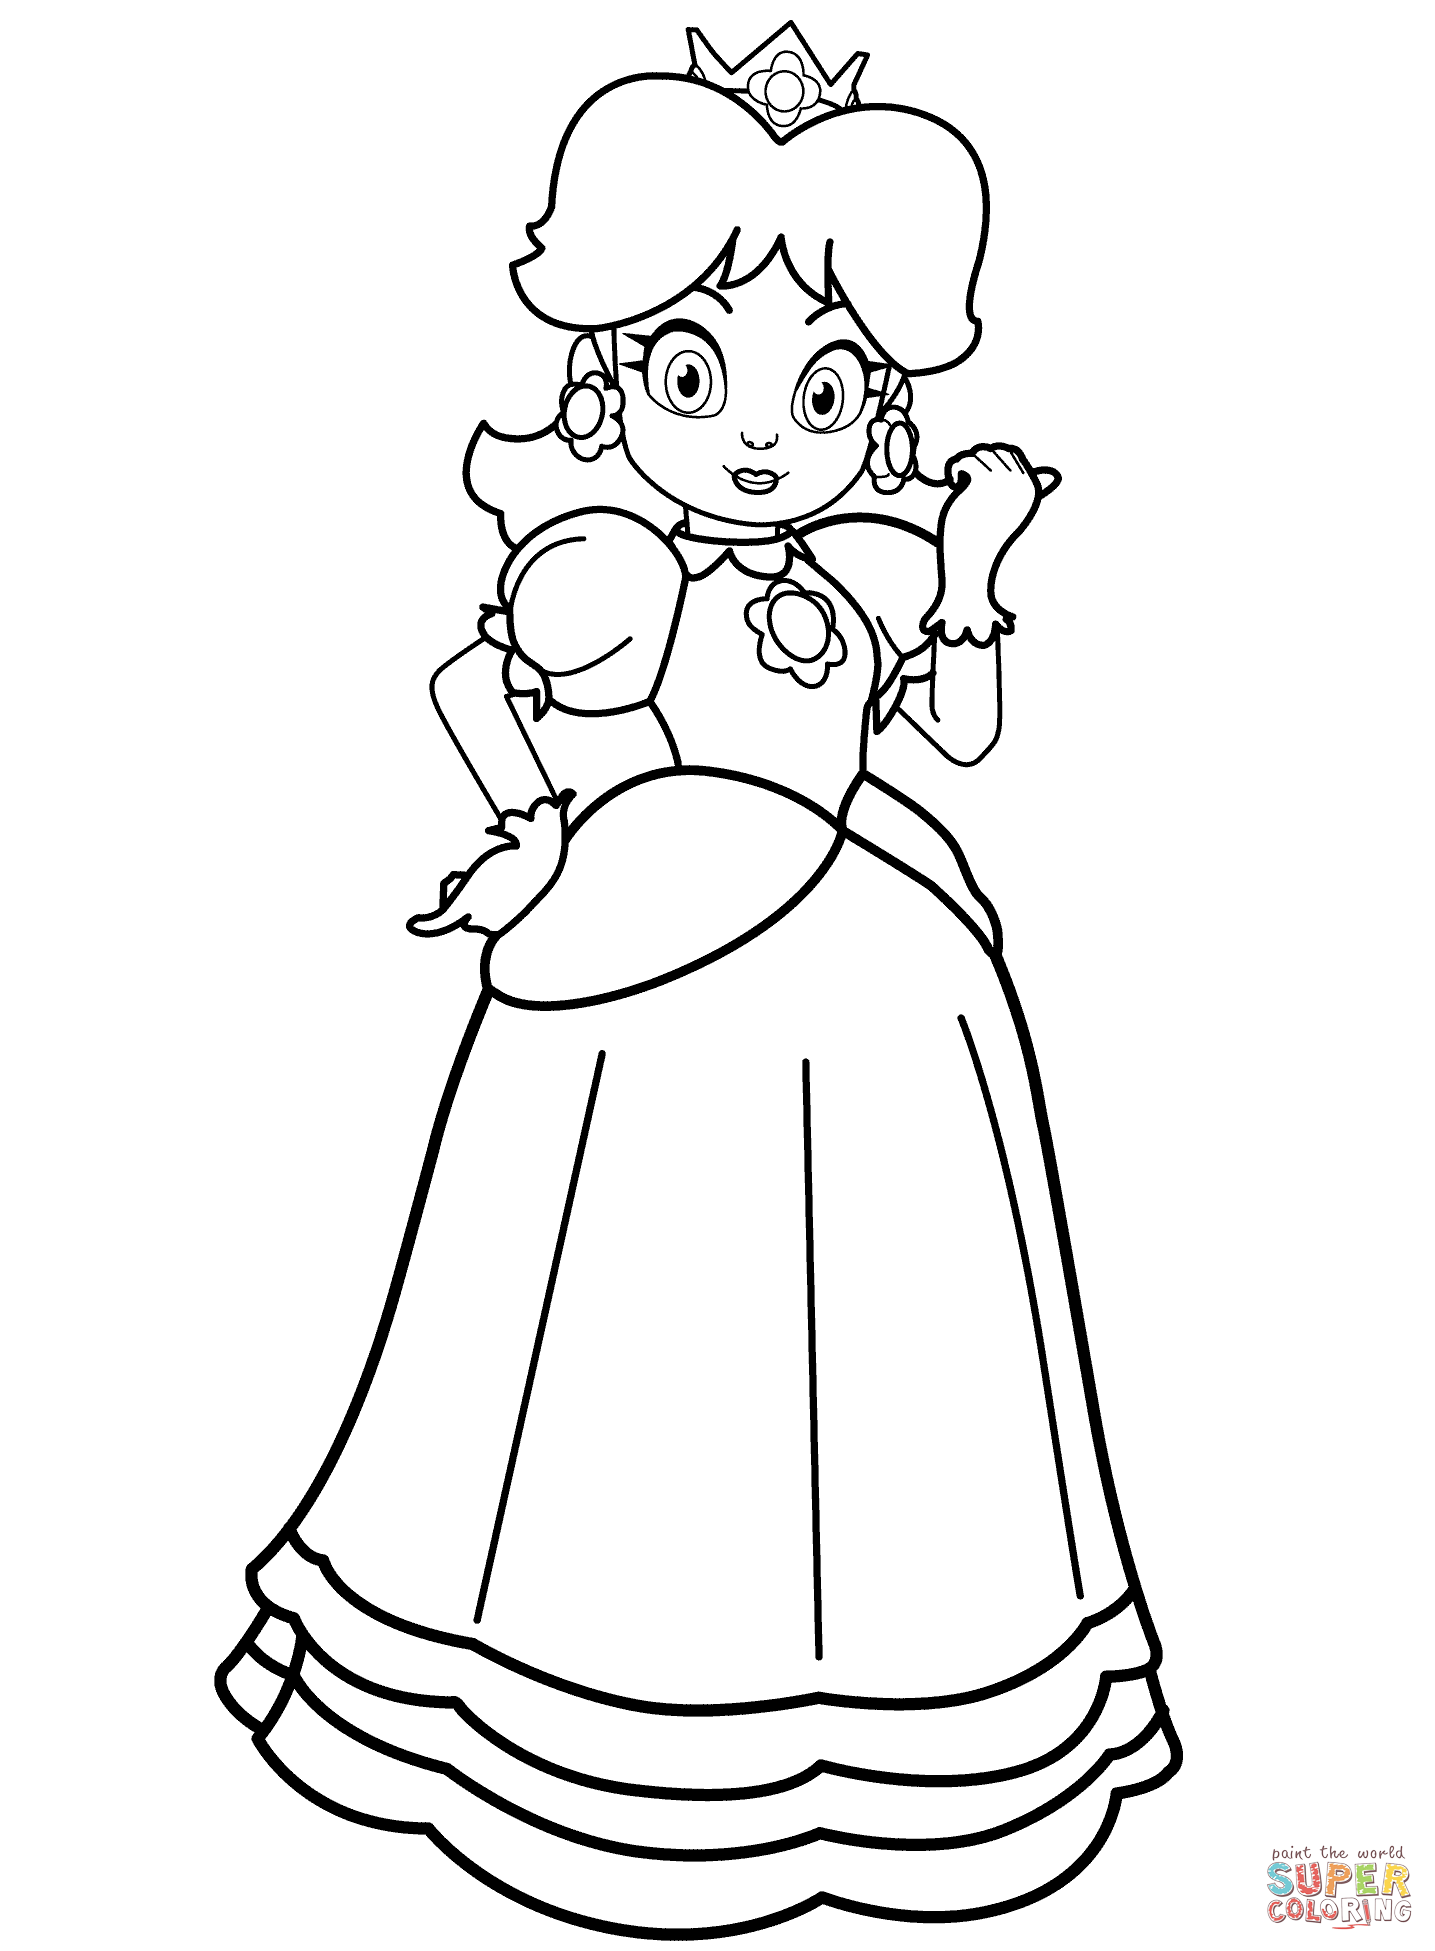 Daisy coloring #2, Download drawings